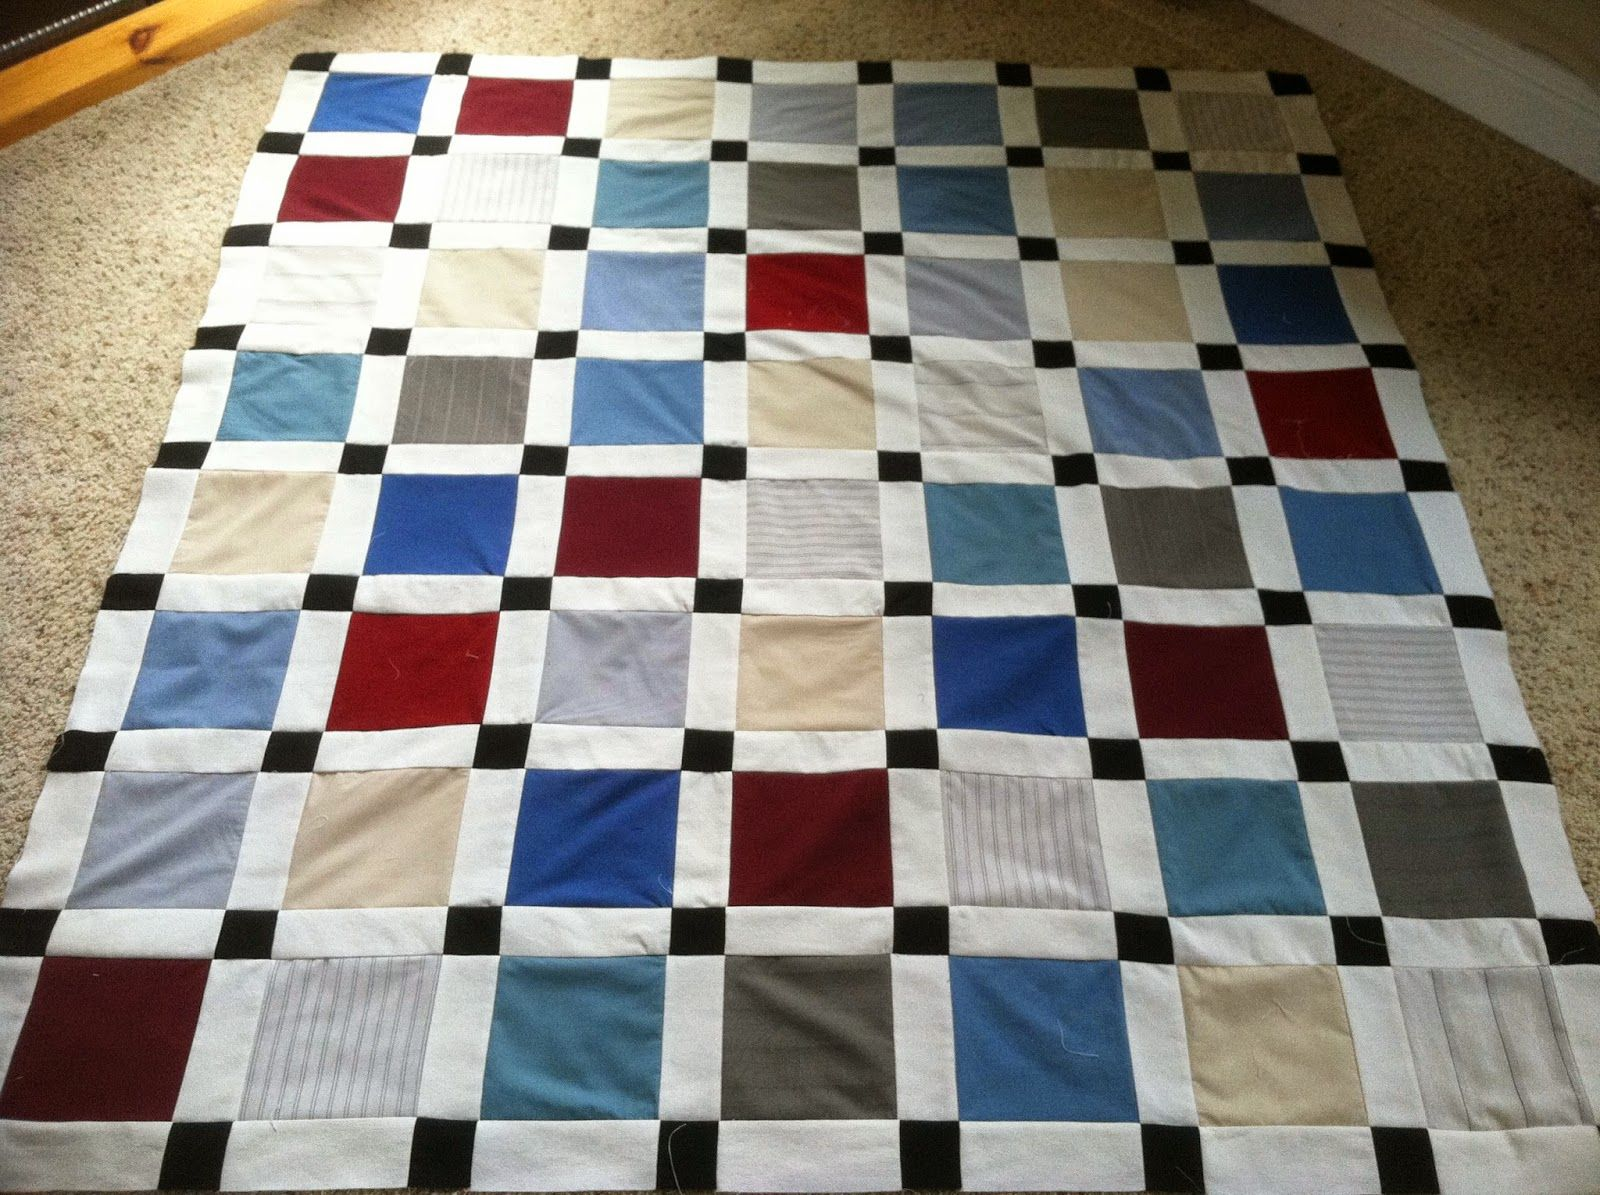 How to Make a Memory Quilt from Your Lost Loved Ones Clothing ... : quilts made from loved ones clothing - Adamdwight.com